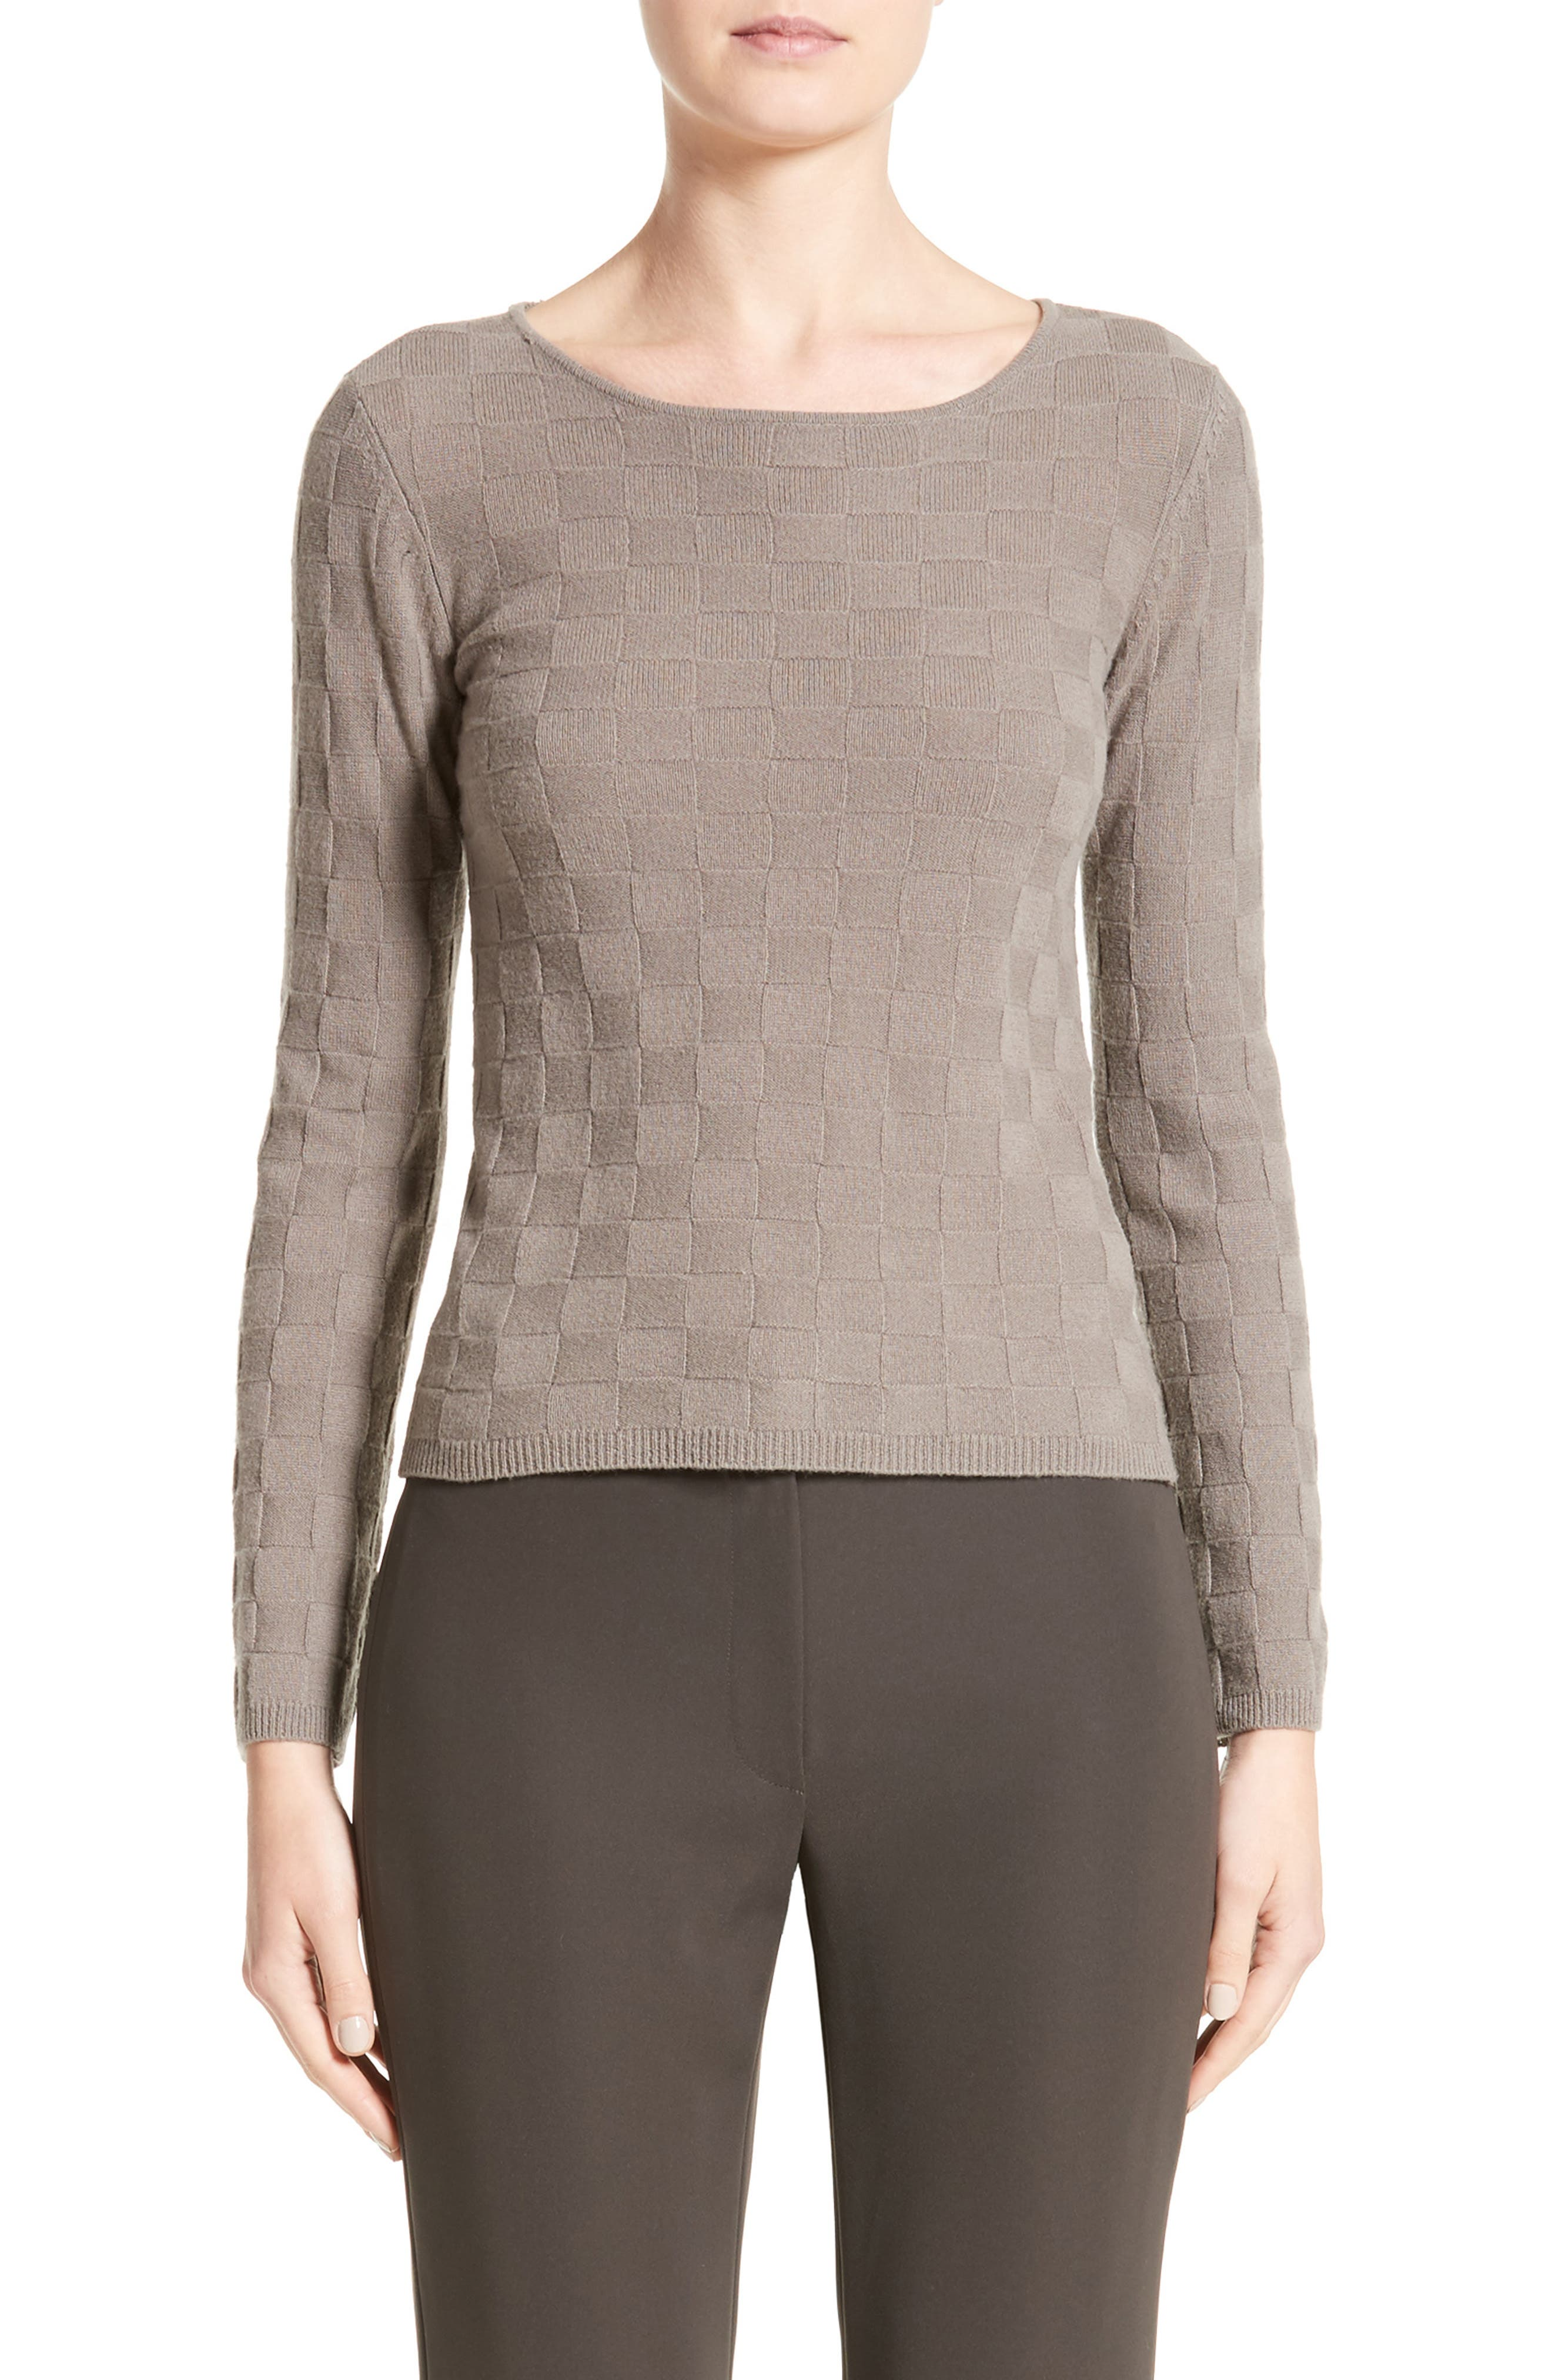 Checkerboard Cashmere Sweater,                             Main thumbnail 1, color,                             250